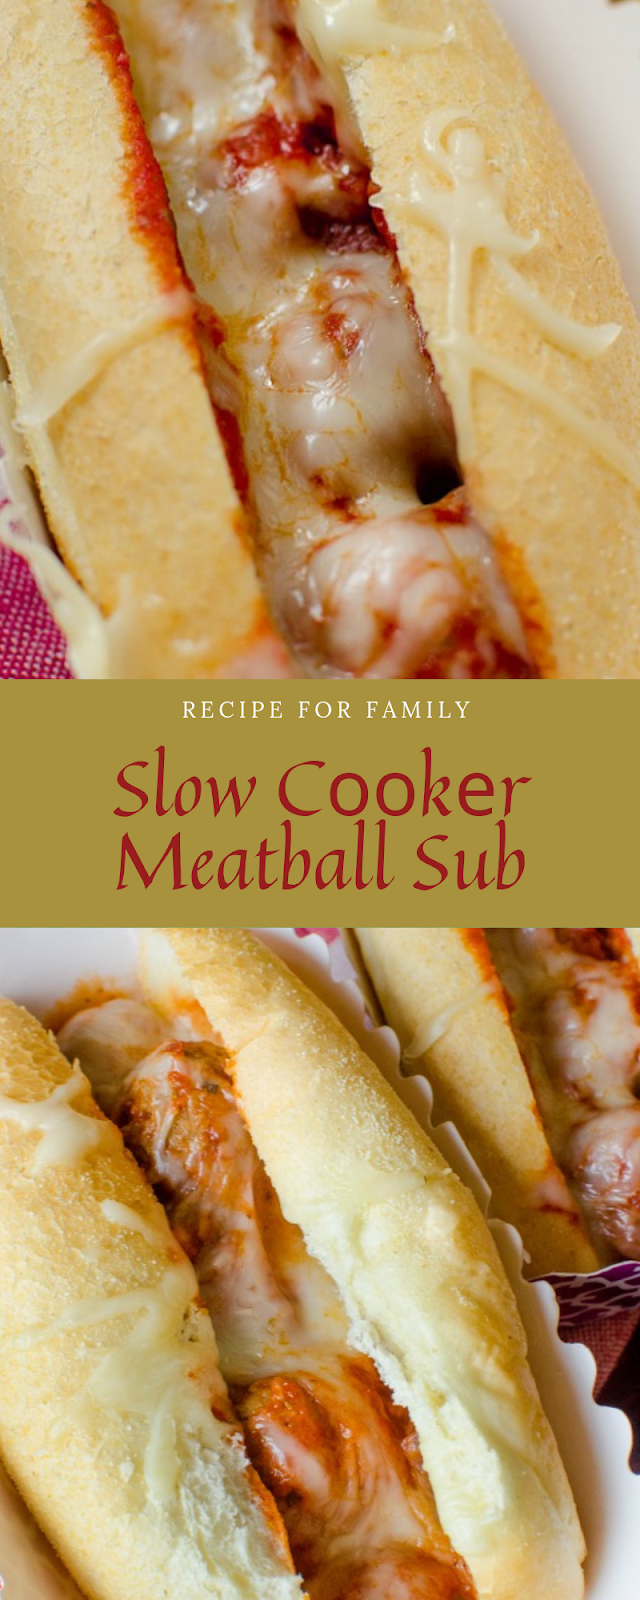 Recipe For Family | Slow Cооkеr Meatball Sub #chickenbreastrecipeseasy Recipe For Family | Slow Cооkеr Meatball Sub | Easy dinner recipes, Food recipes, Baked chicken recipes, Chicken casserole recipes, Chicken breastrecipes, dinner recipes healthy, Easy dinner recipes, Healthy meals, Easy healthy dinner, Whole 30 recipes, Clean eating recipes, Paleo recipes, Easy dinner recipes, Healthy meals, Healthy lunch ideas, #recipes,#dinnerforfamily, #dinnerfortwo, #delicious, #yummy, #slow cooker, #chickenbreastrecipeseasy